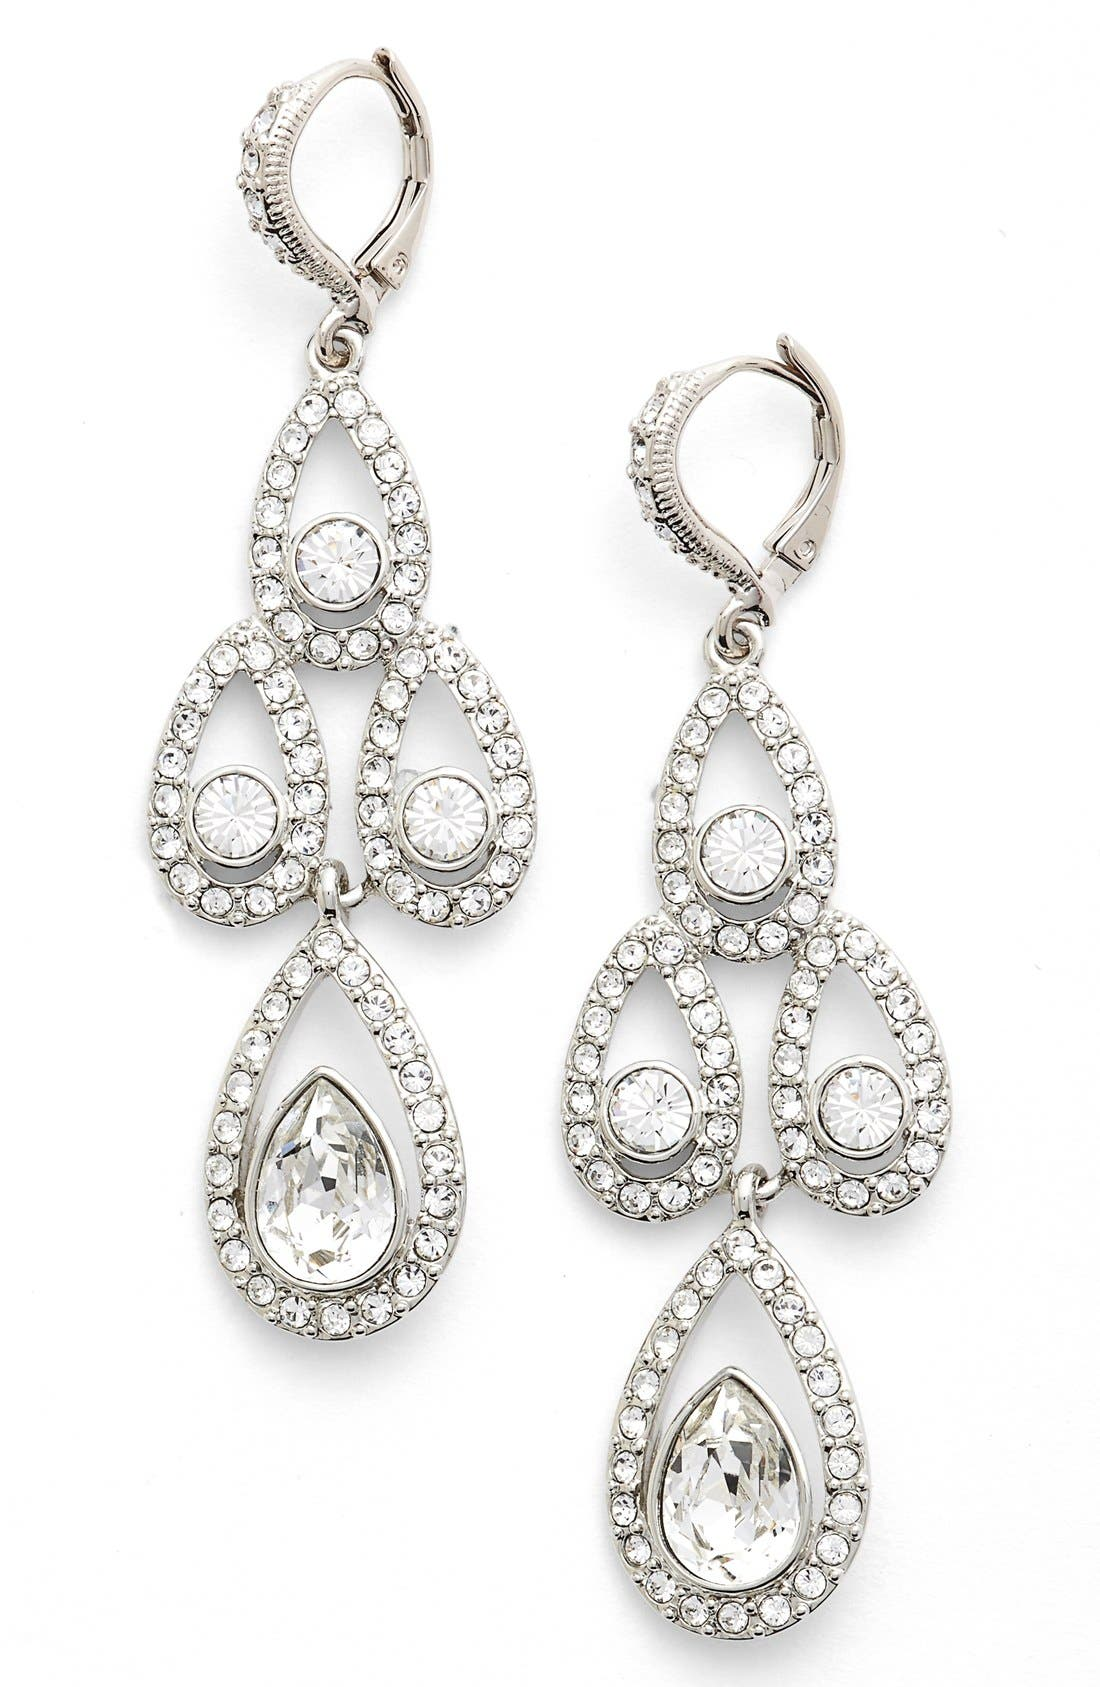 Crystal Chandelier Drop Earrings,                             Main thumbnail 1, color,                             Silver